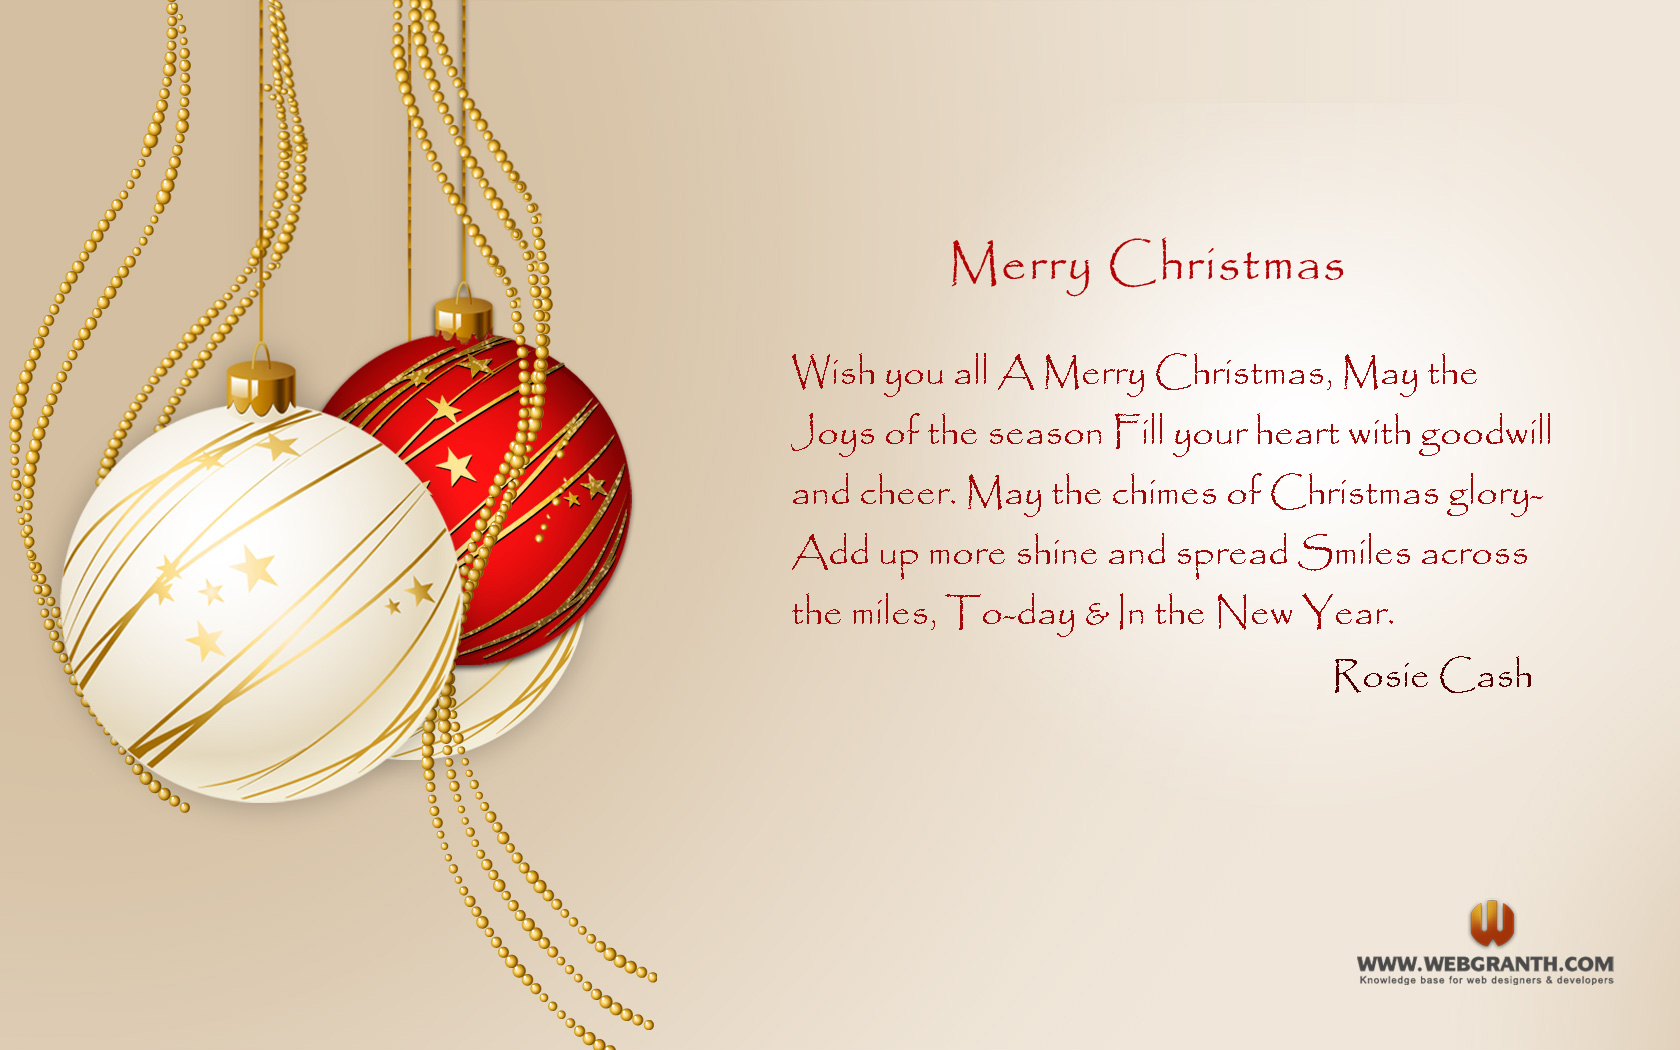 Graceful Merry Quotes Wallpaper Free Download Summer Holiday Wishes Quotes Holiday Wishes Quotes Colleagues inspiration Holiday Wishes Quotes